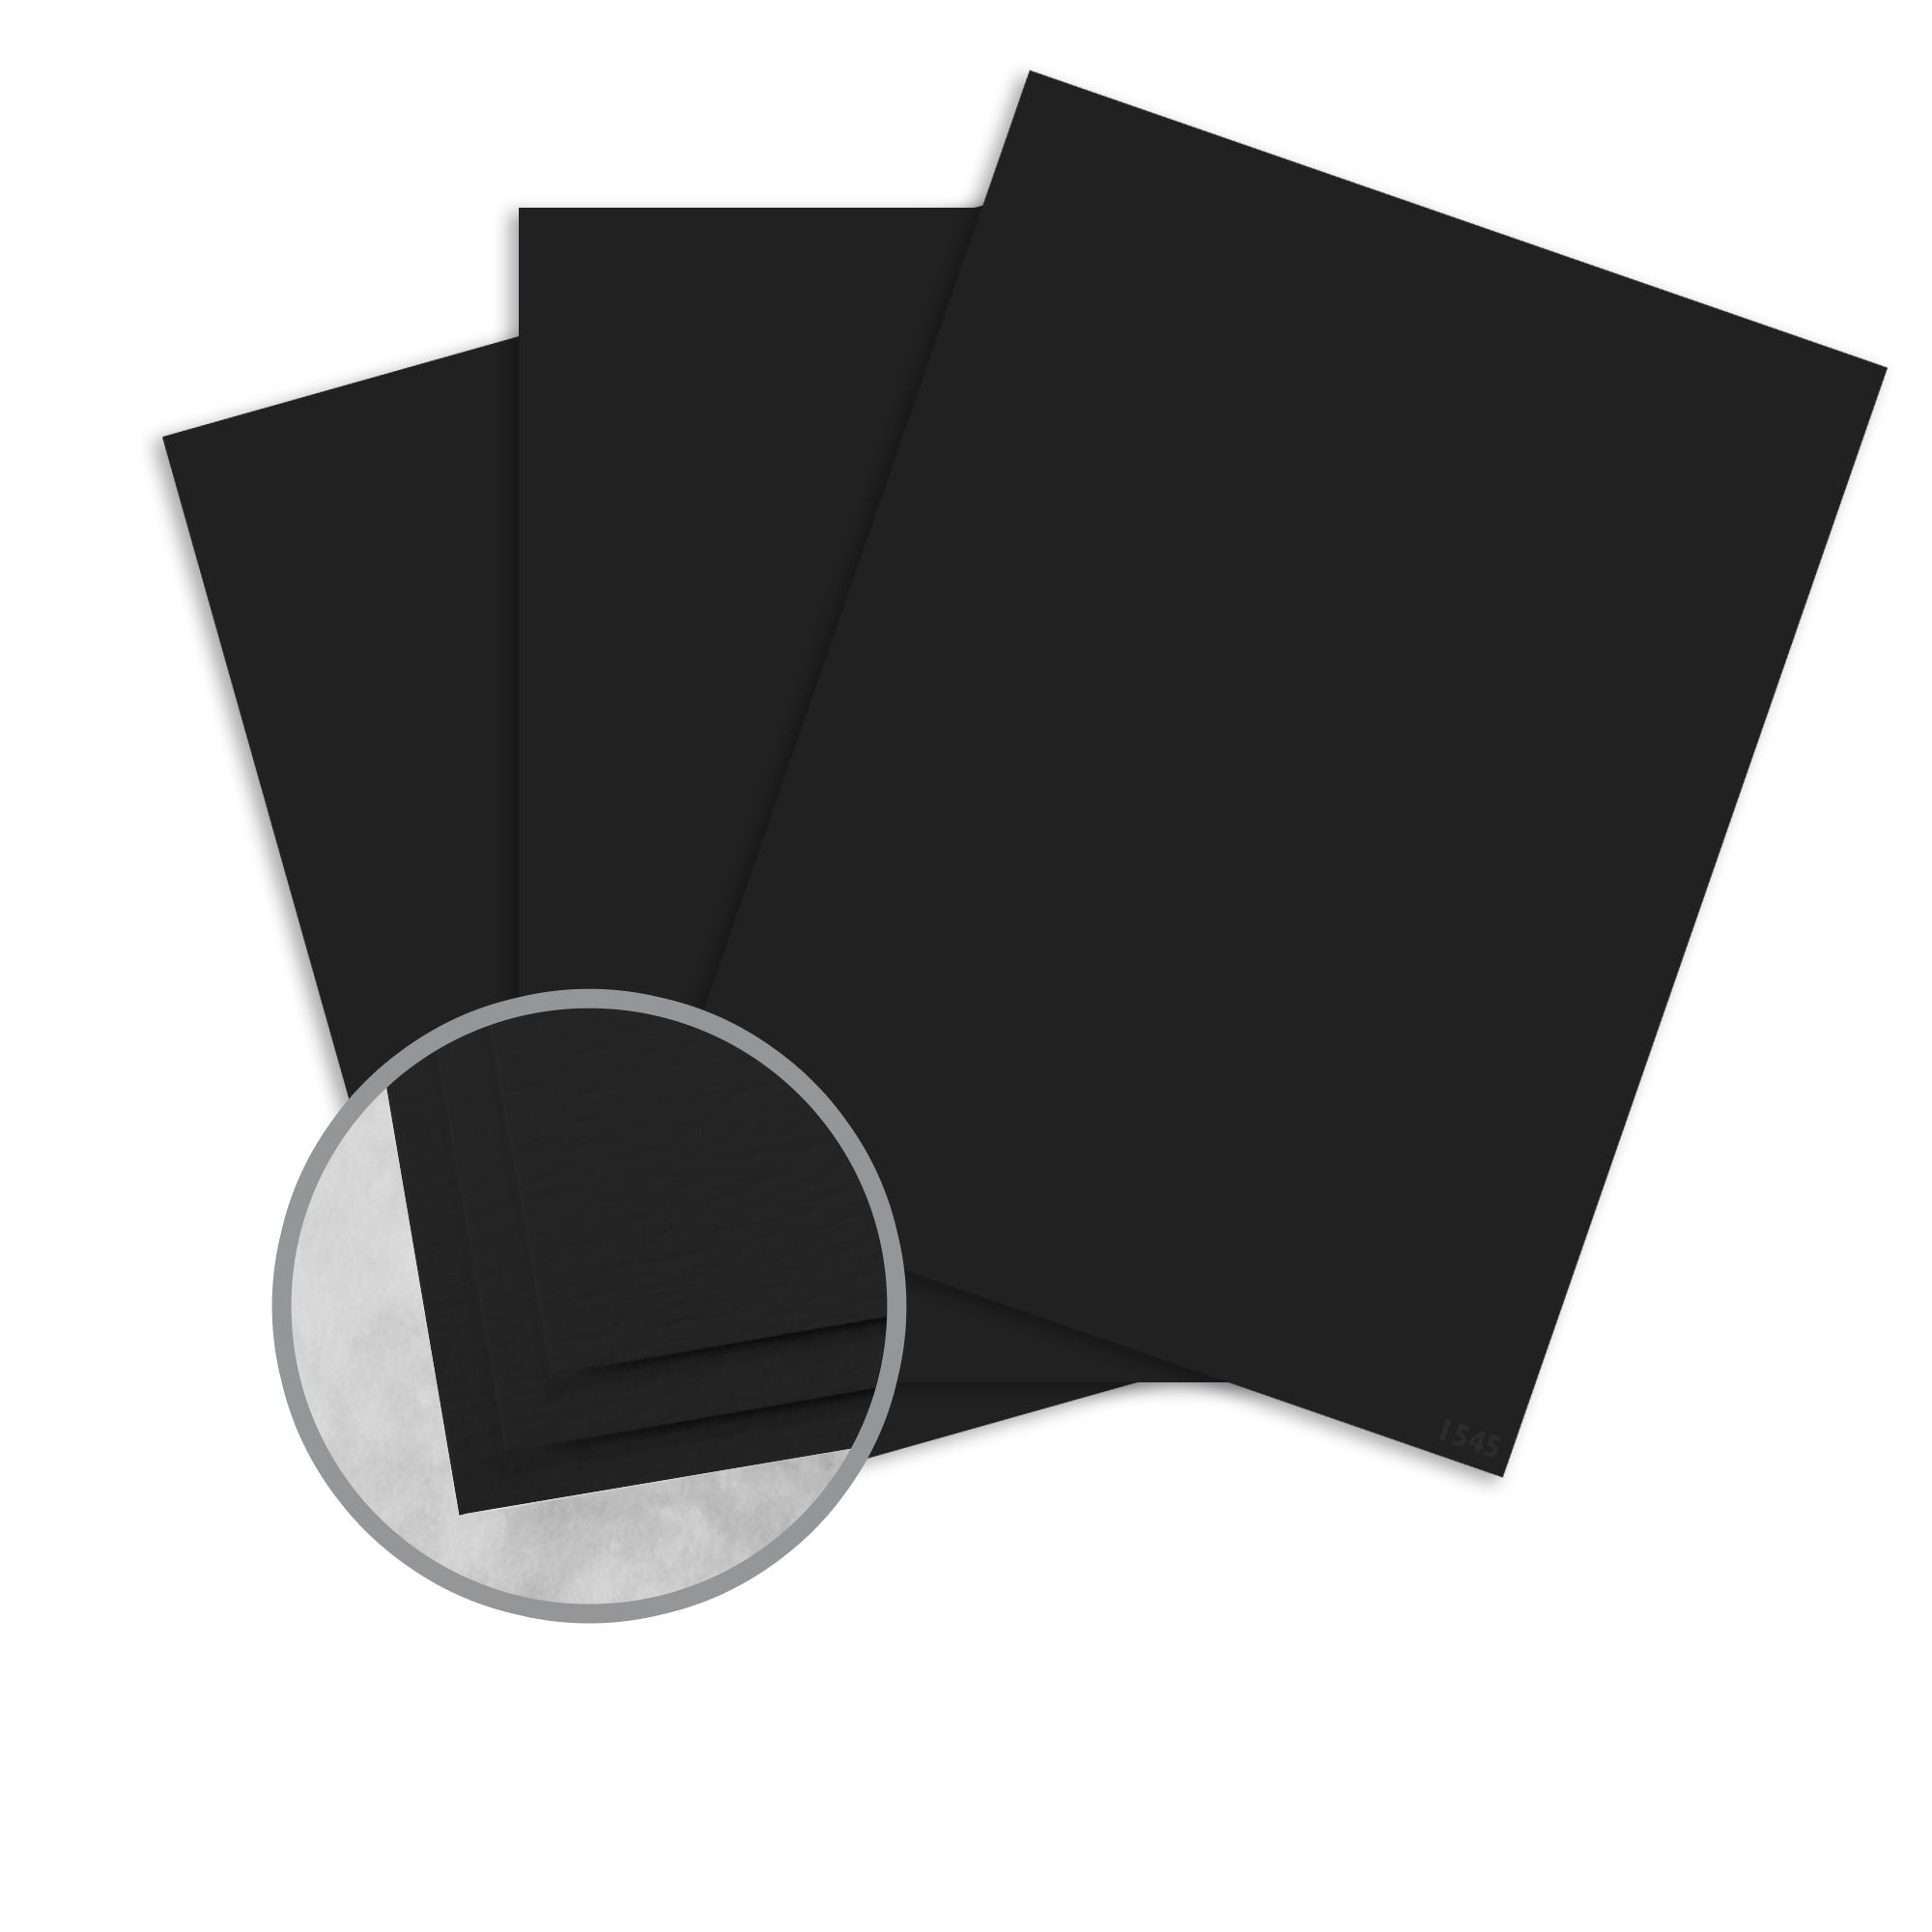 New Black Card Stock 26 X 40 In 80 Lb Cover Felt 30 Recycled Carnival Card Stock 3 C012941